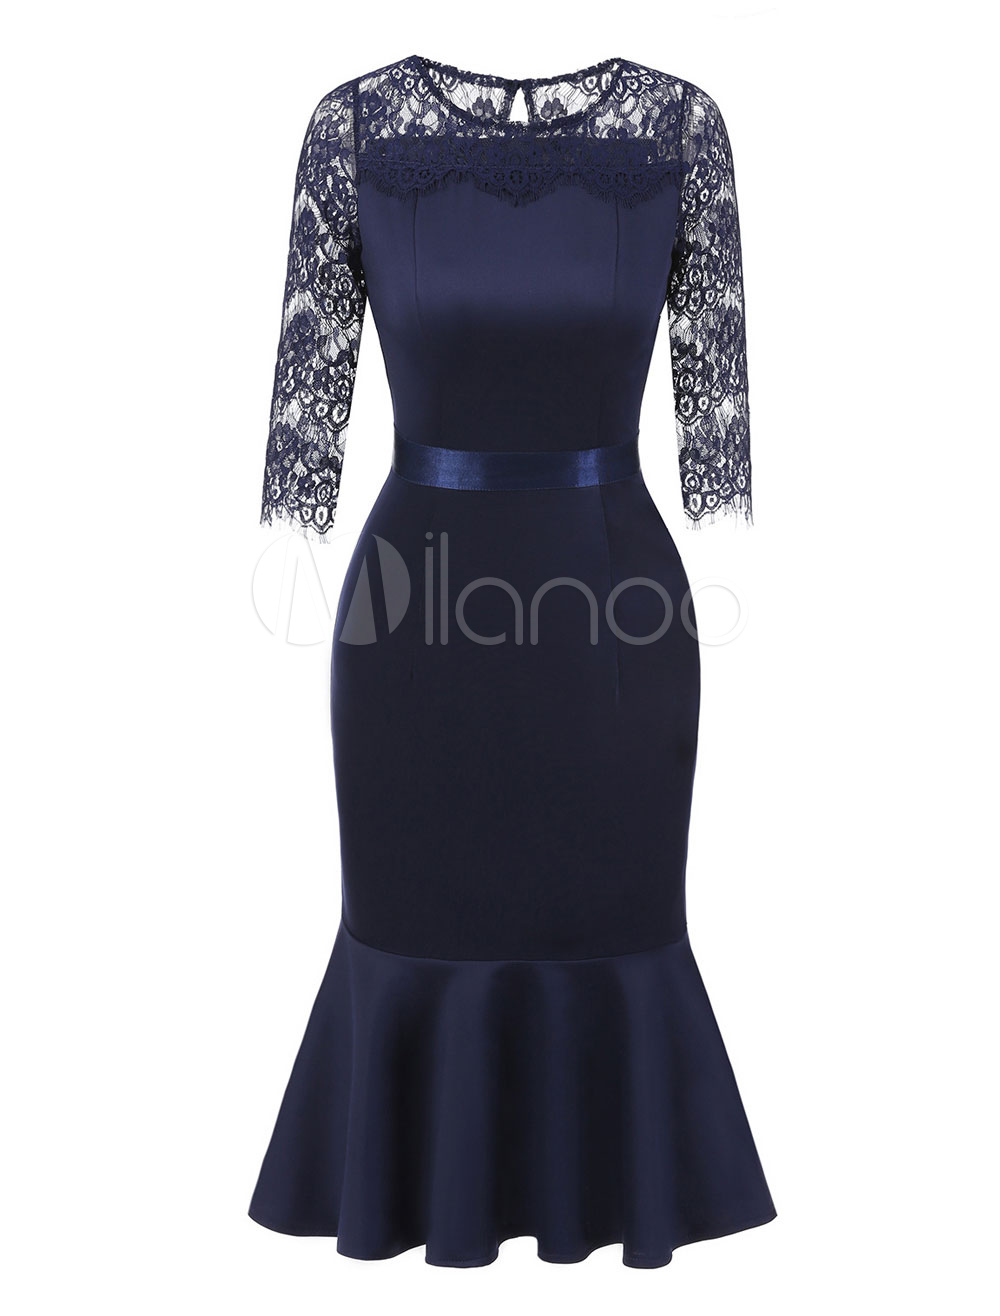 Buy Vintage Bodycon Dress Women Party Dress Lace Round Neck Deep Blue Shaping Midi Dress for $35.99 in Milanoo store